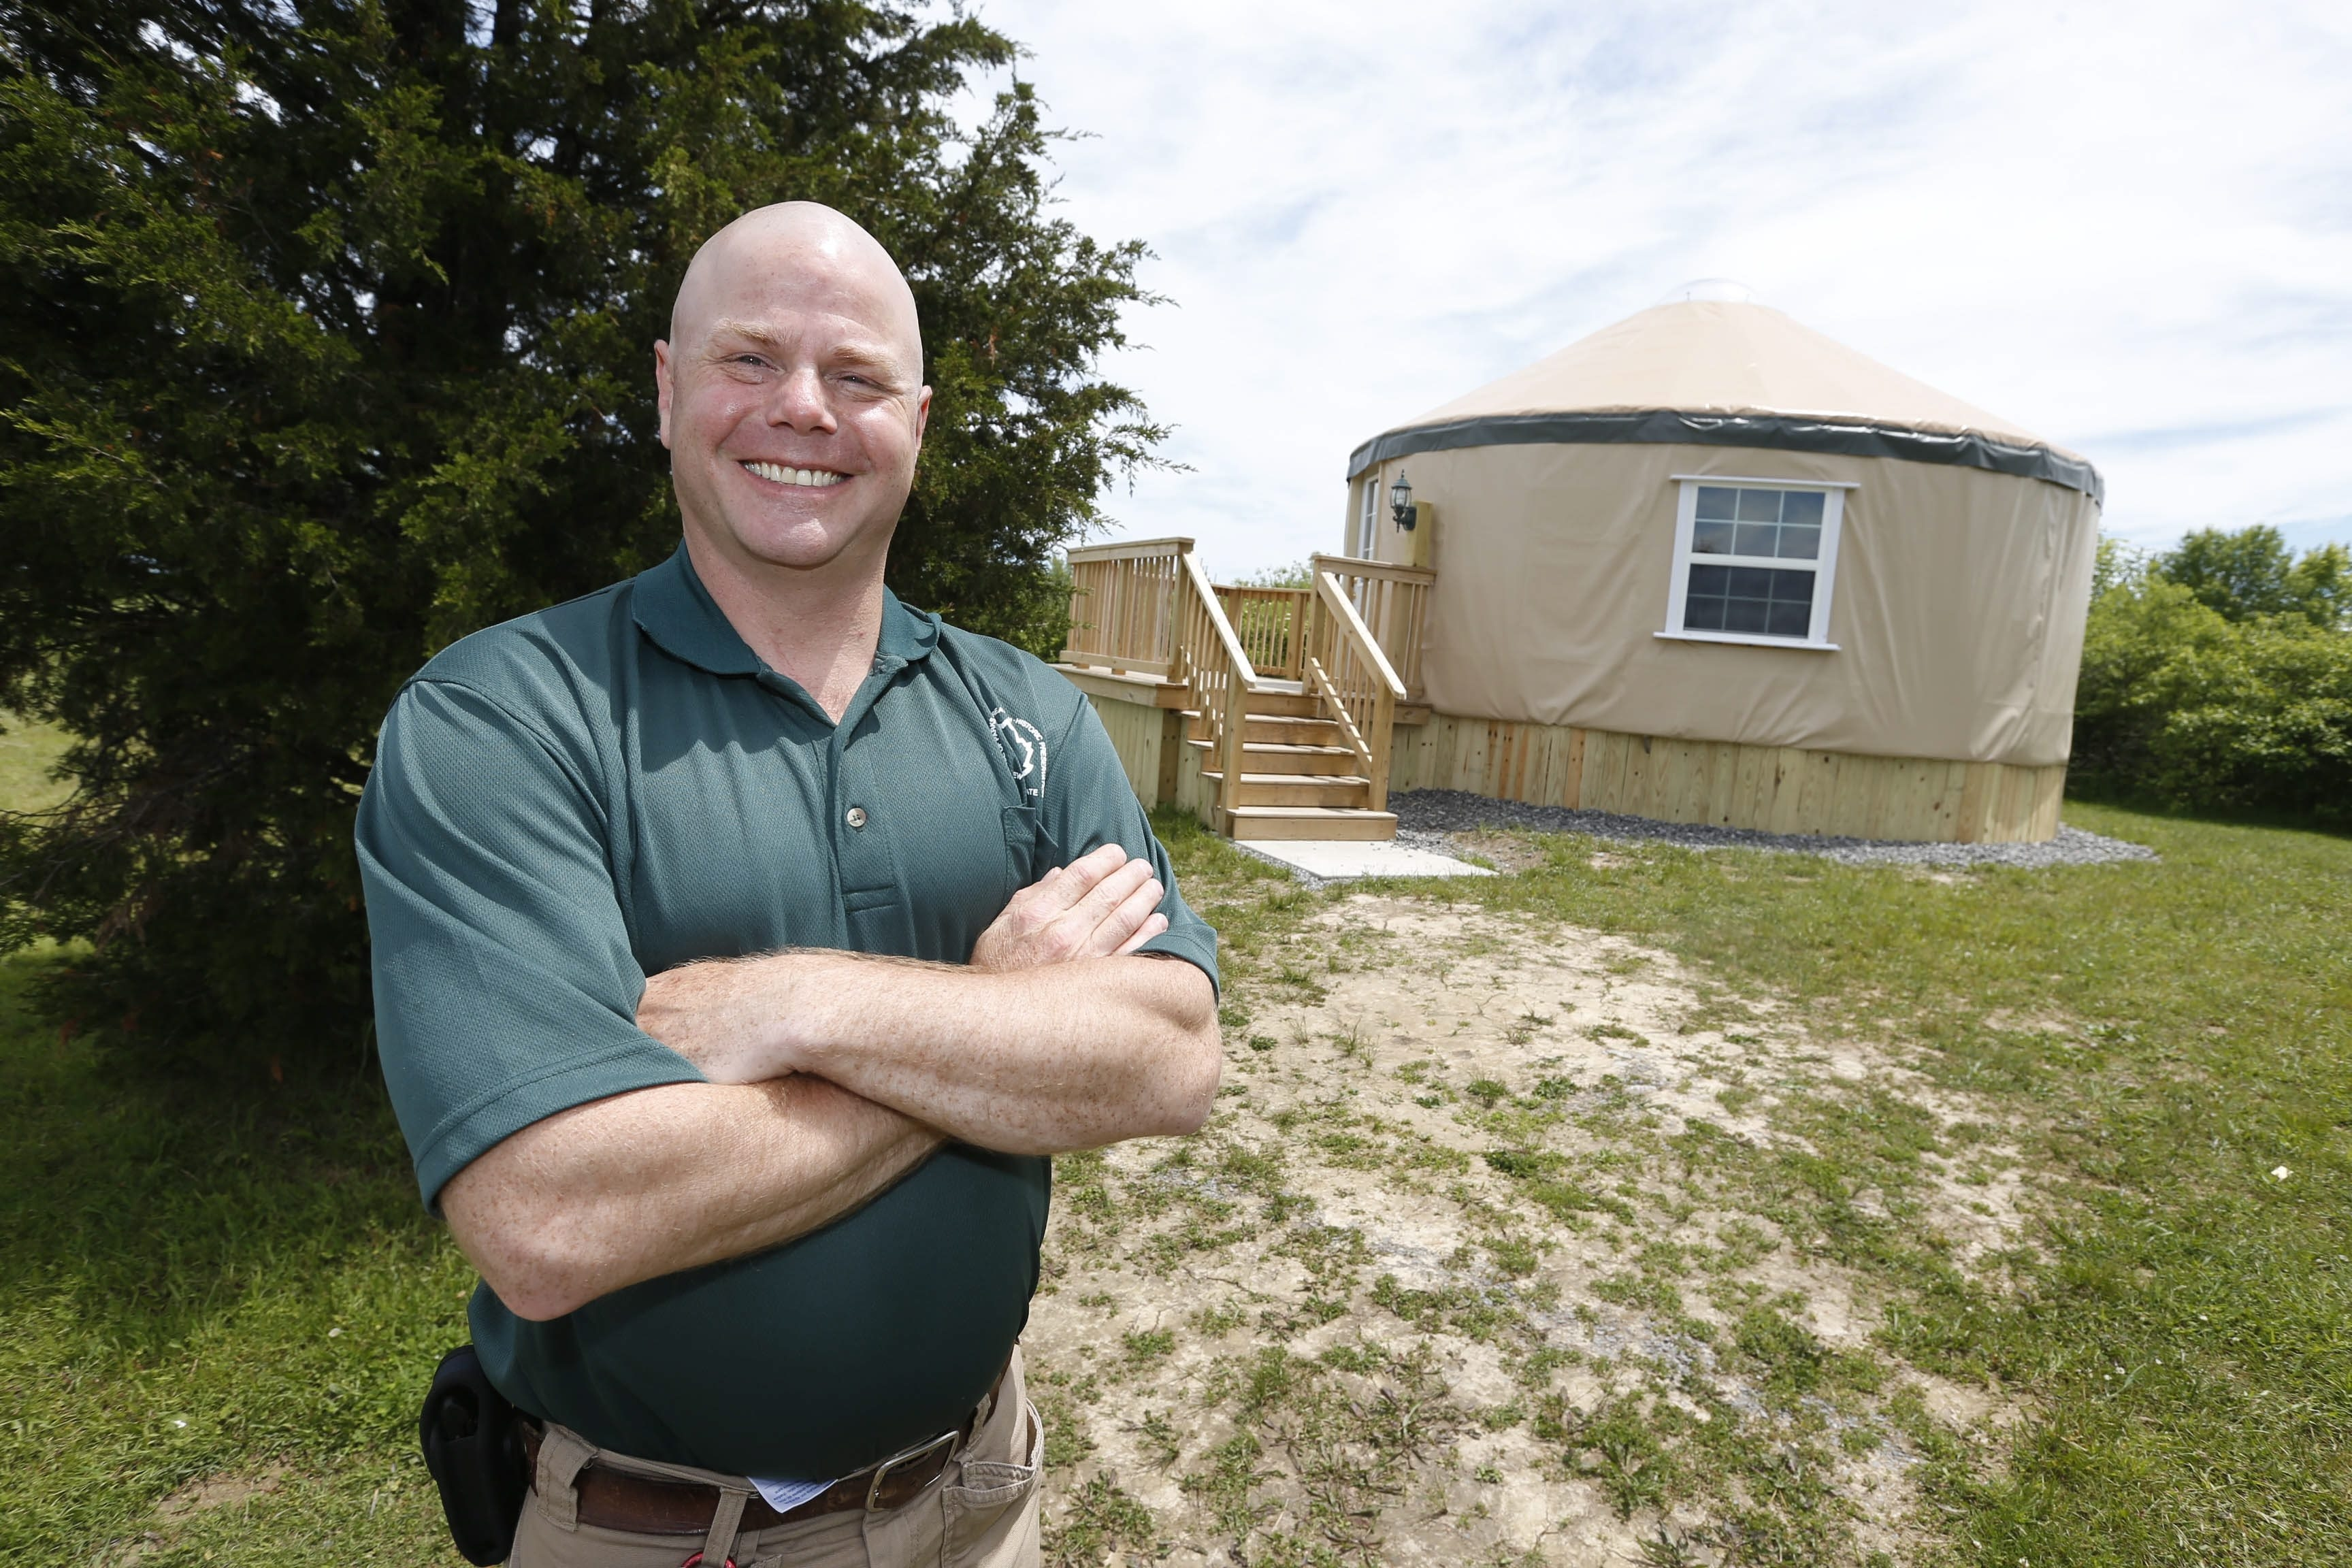 Golden Hills State Park manager Eric Hoppe says he inherited a facility that is in good shape. One of the new touches is a yurt.